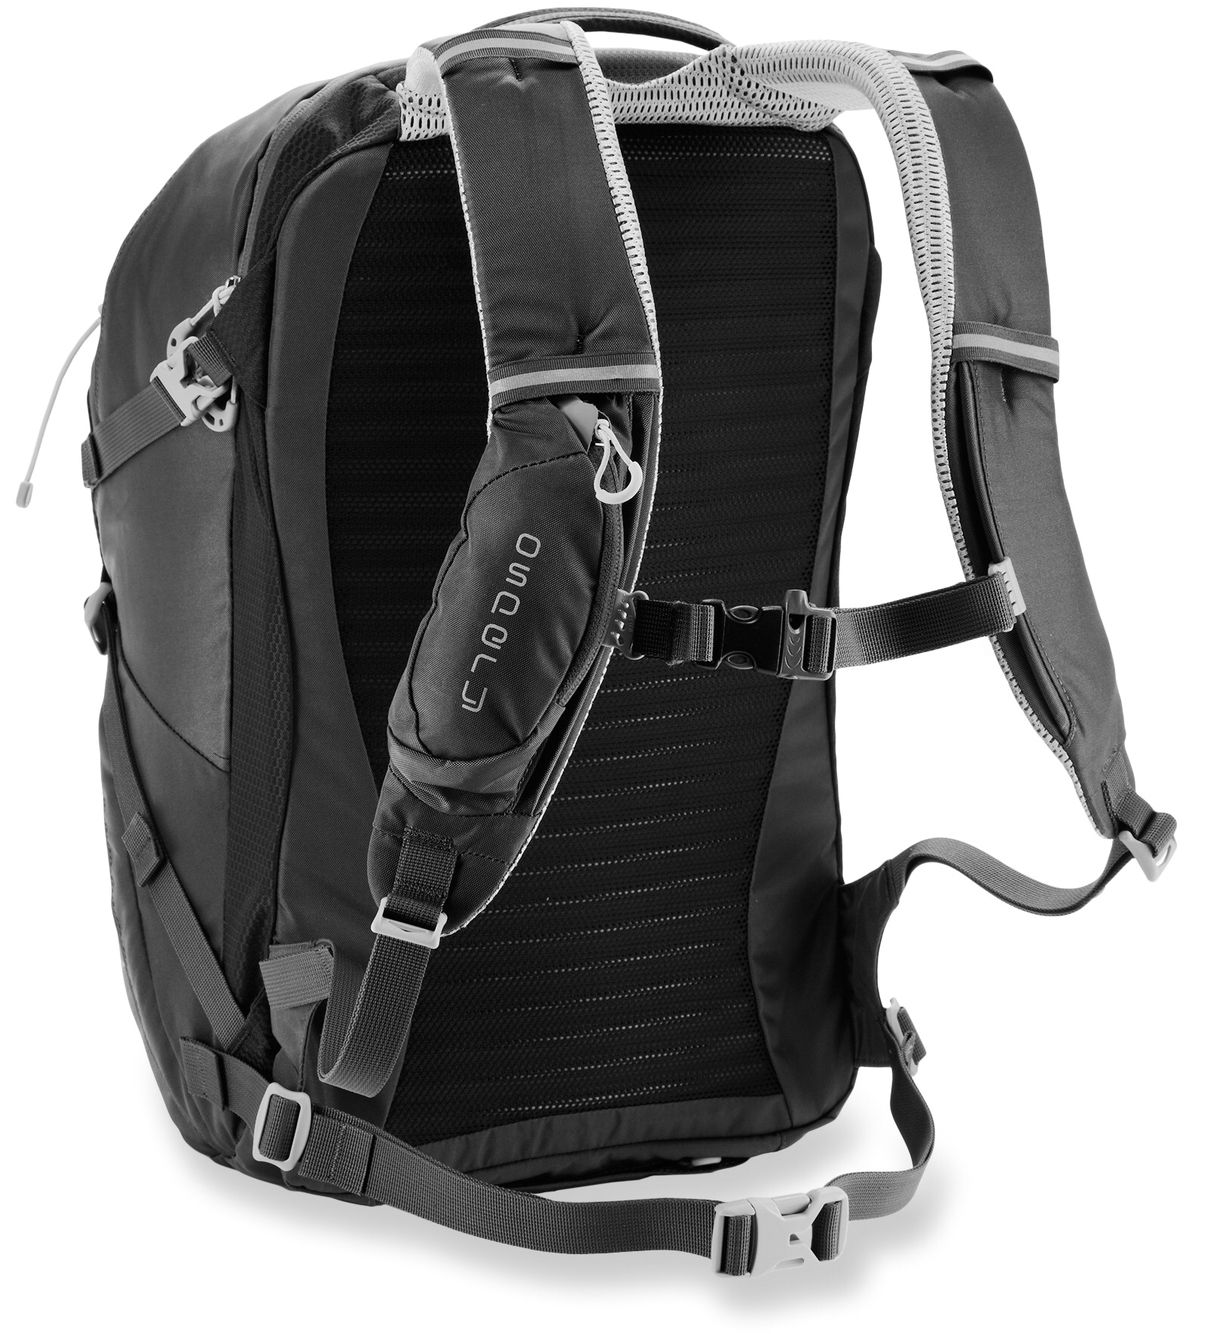 The results of the research osprey momentum 30 daypack 86e3aba3d4322